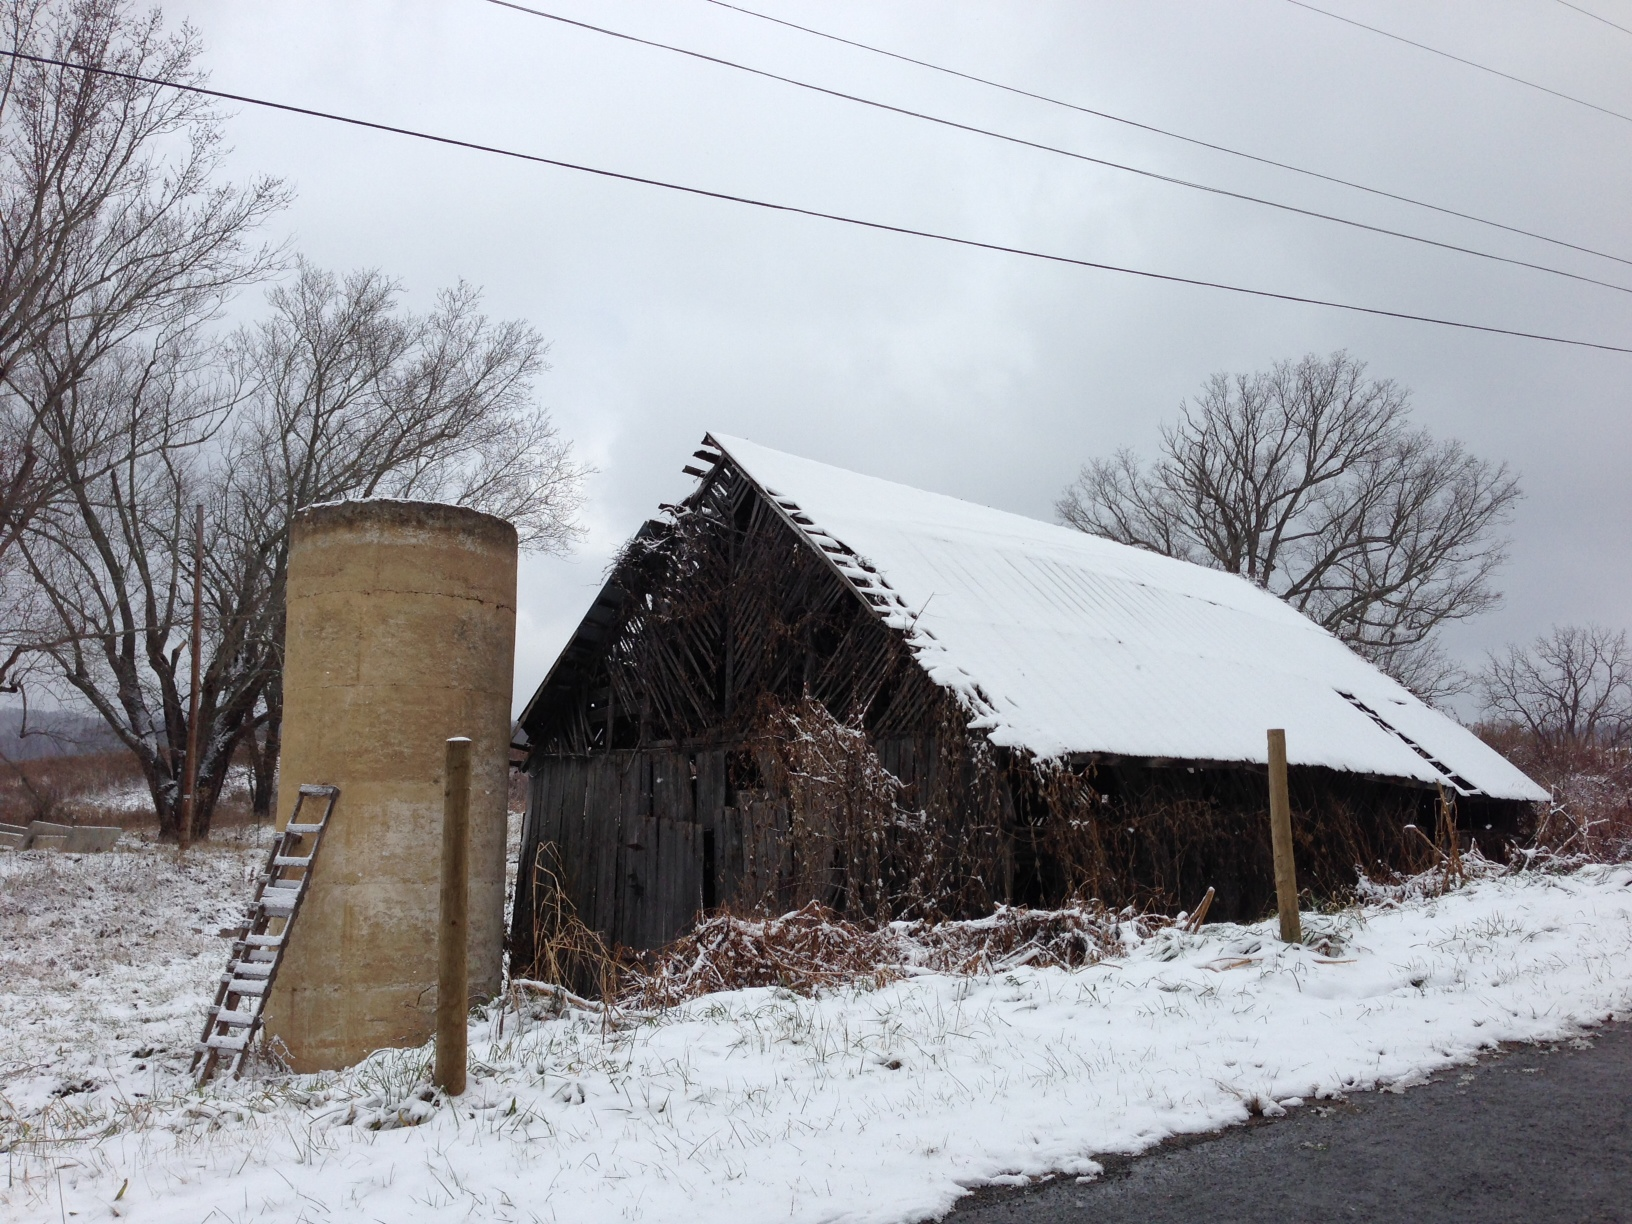 Winter Barn!